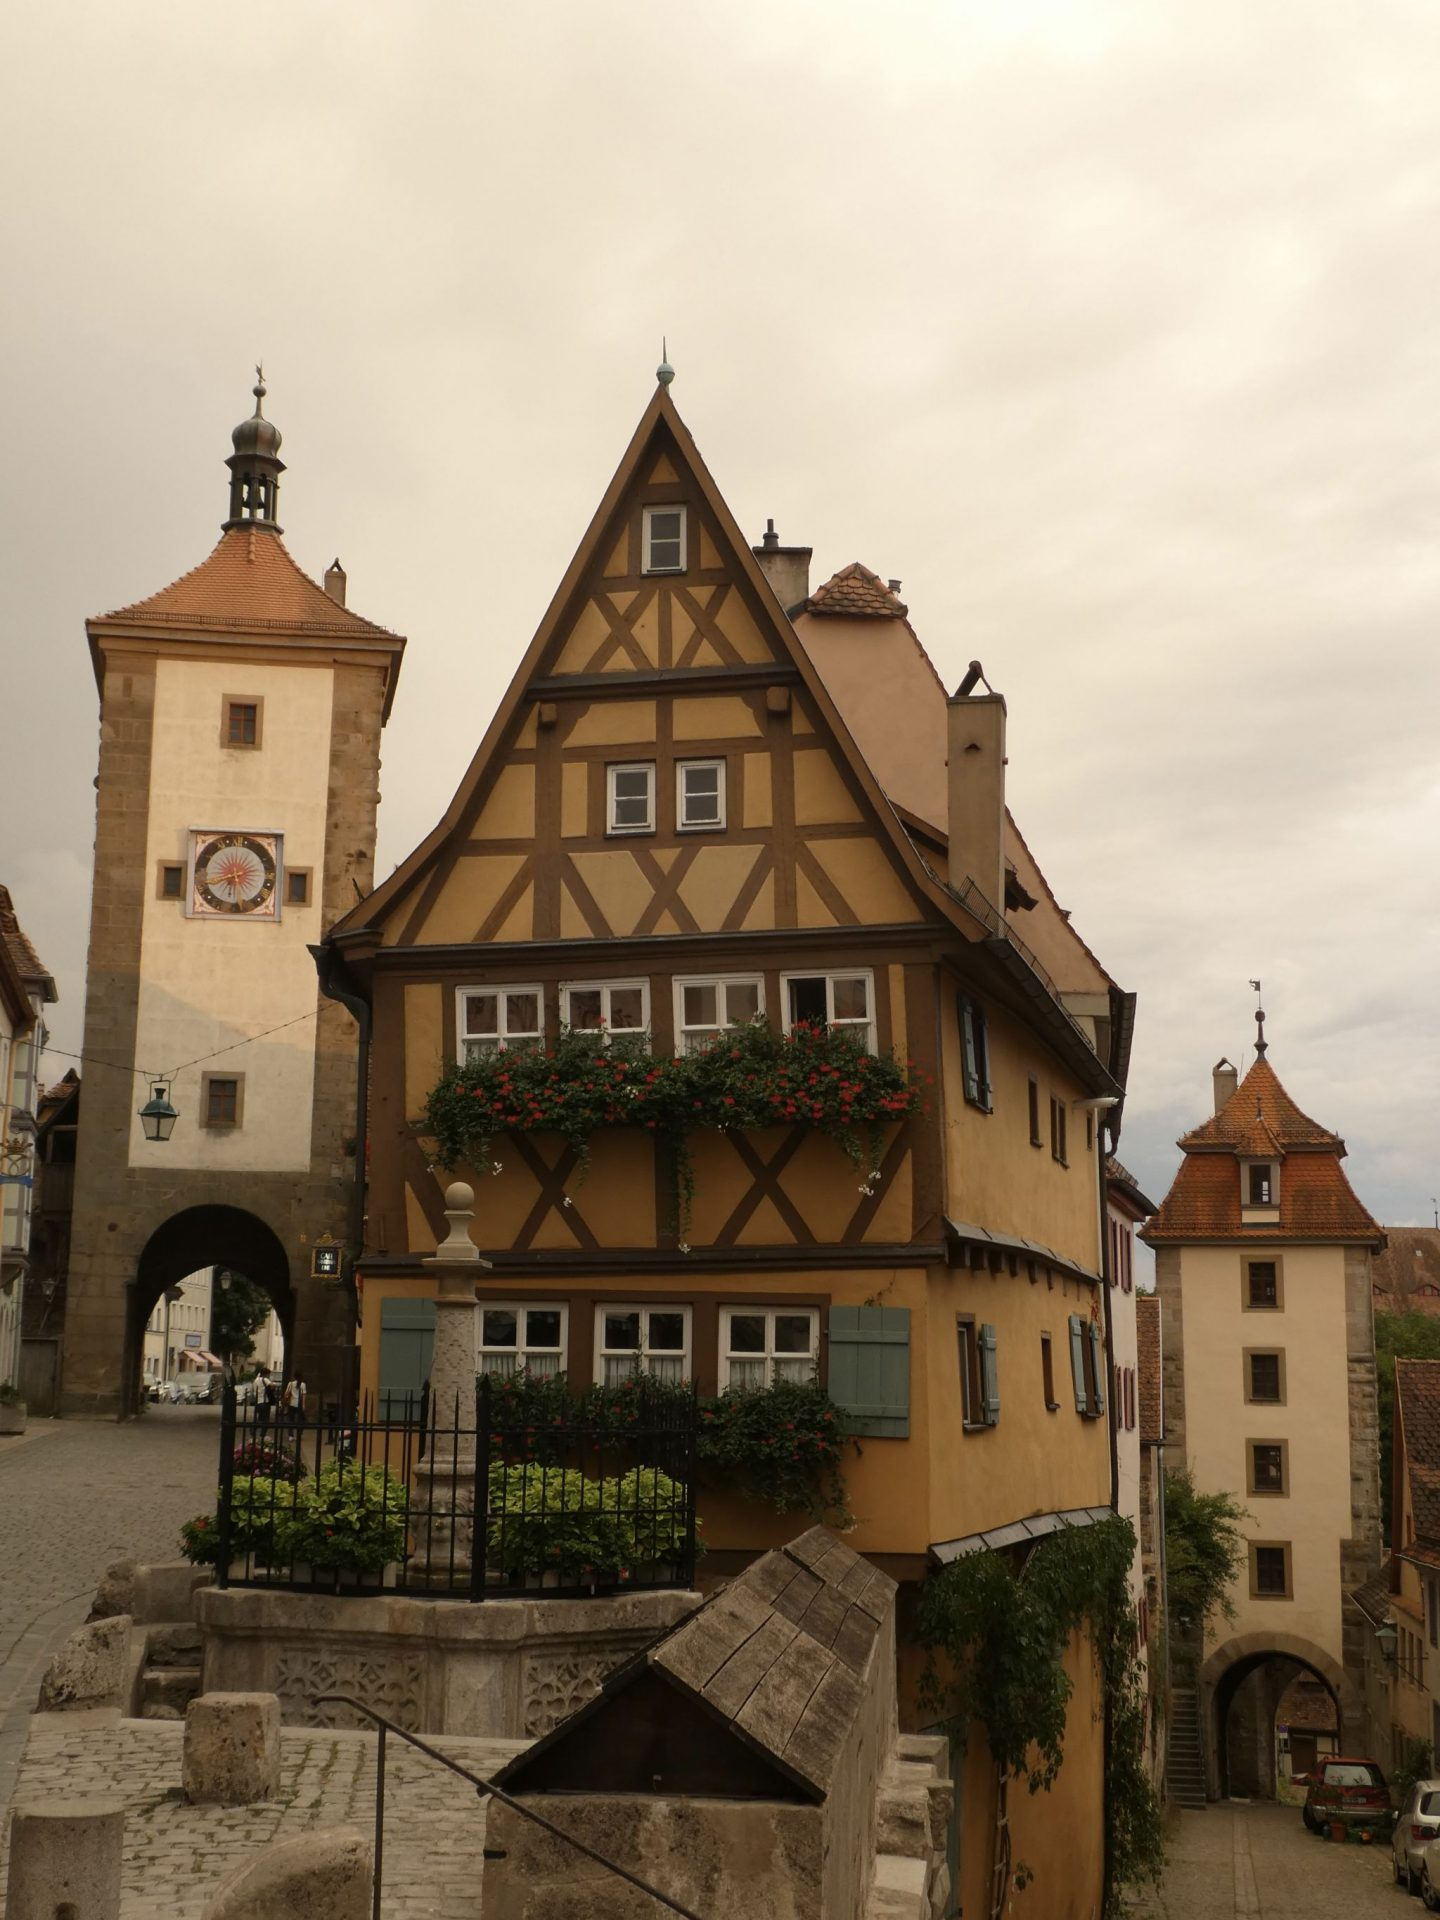 Rothenburg (12 to 14 August 2018)